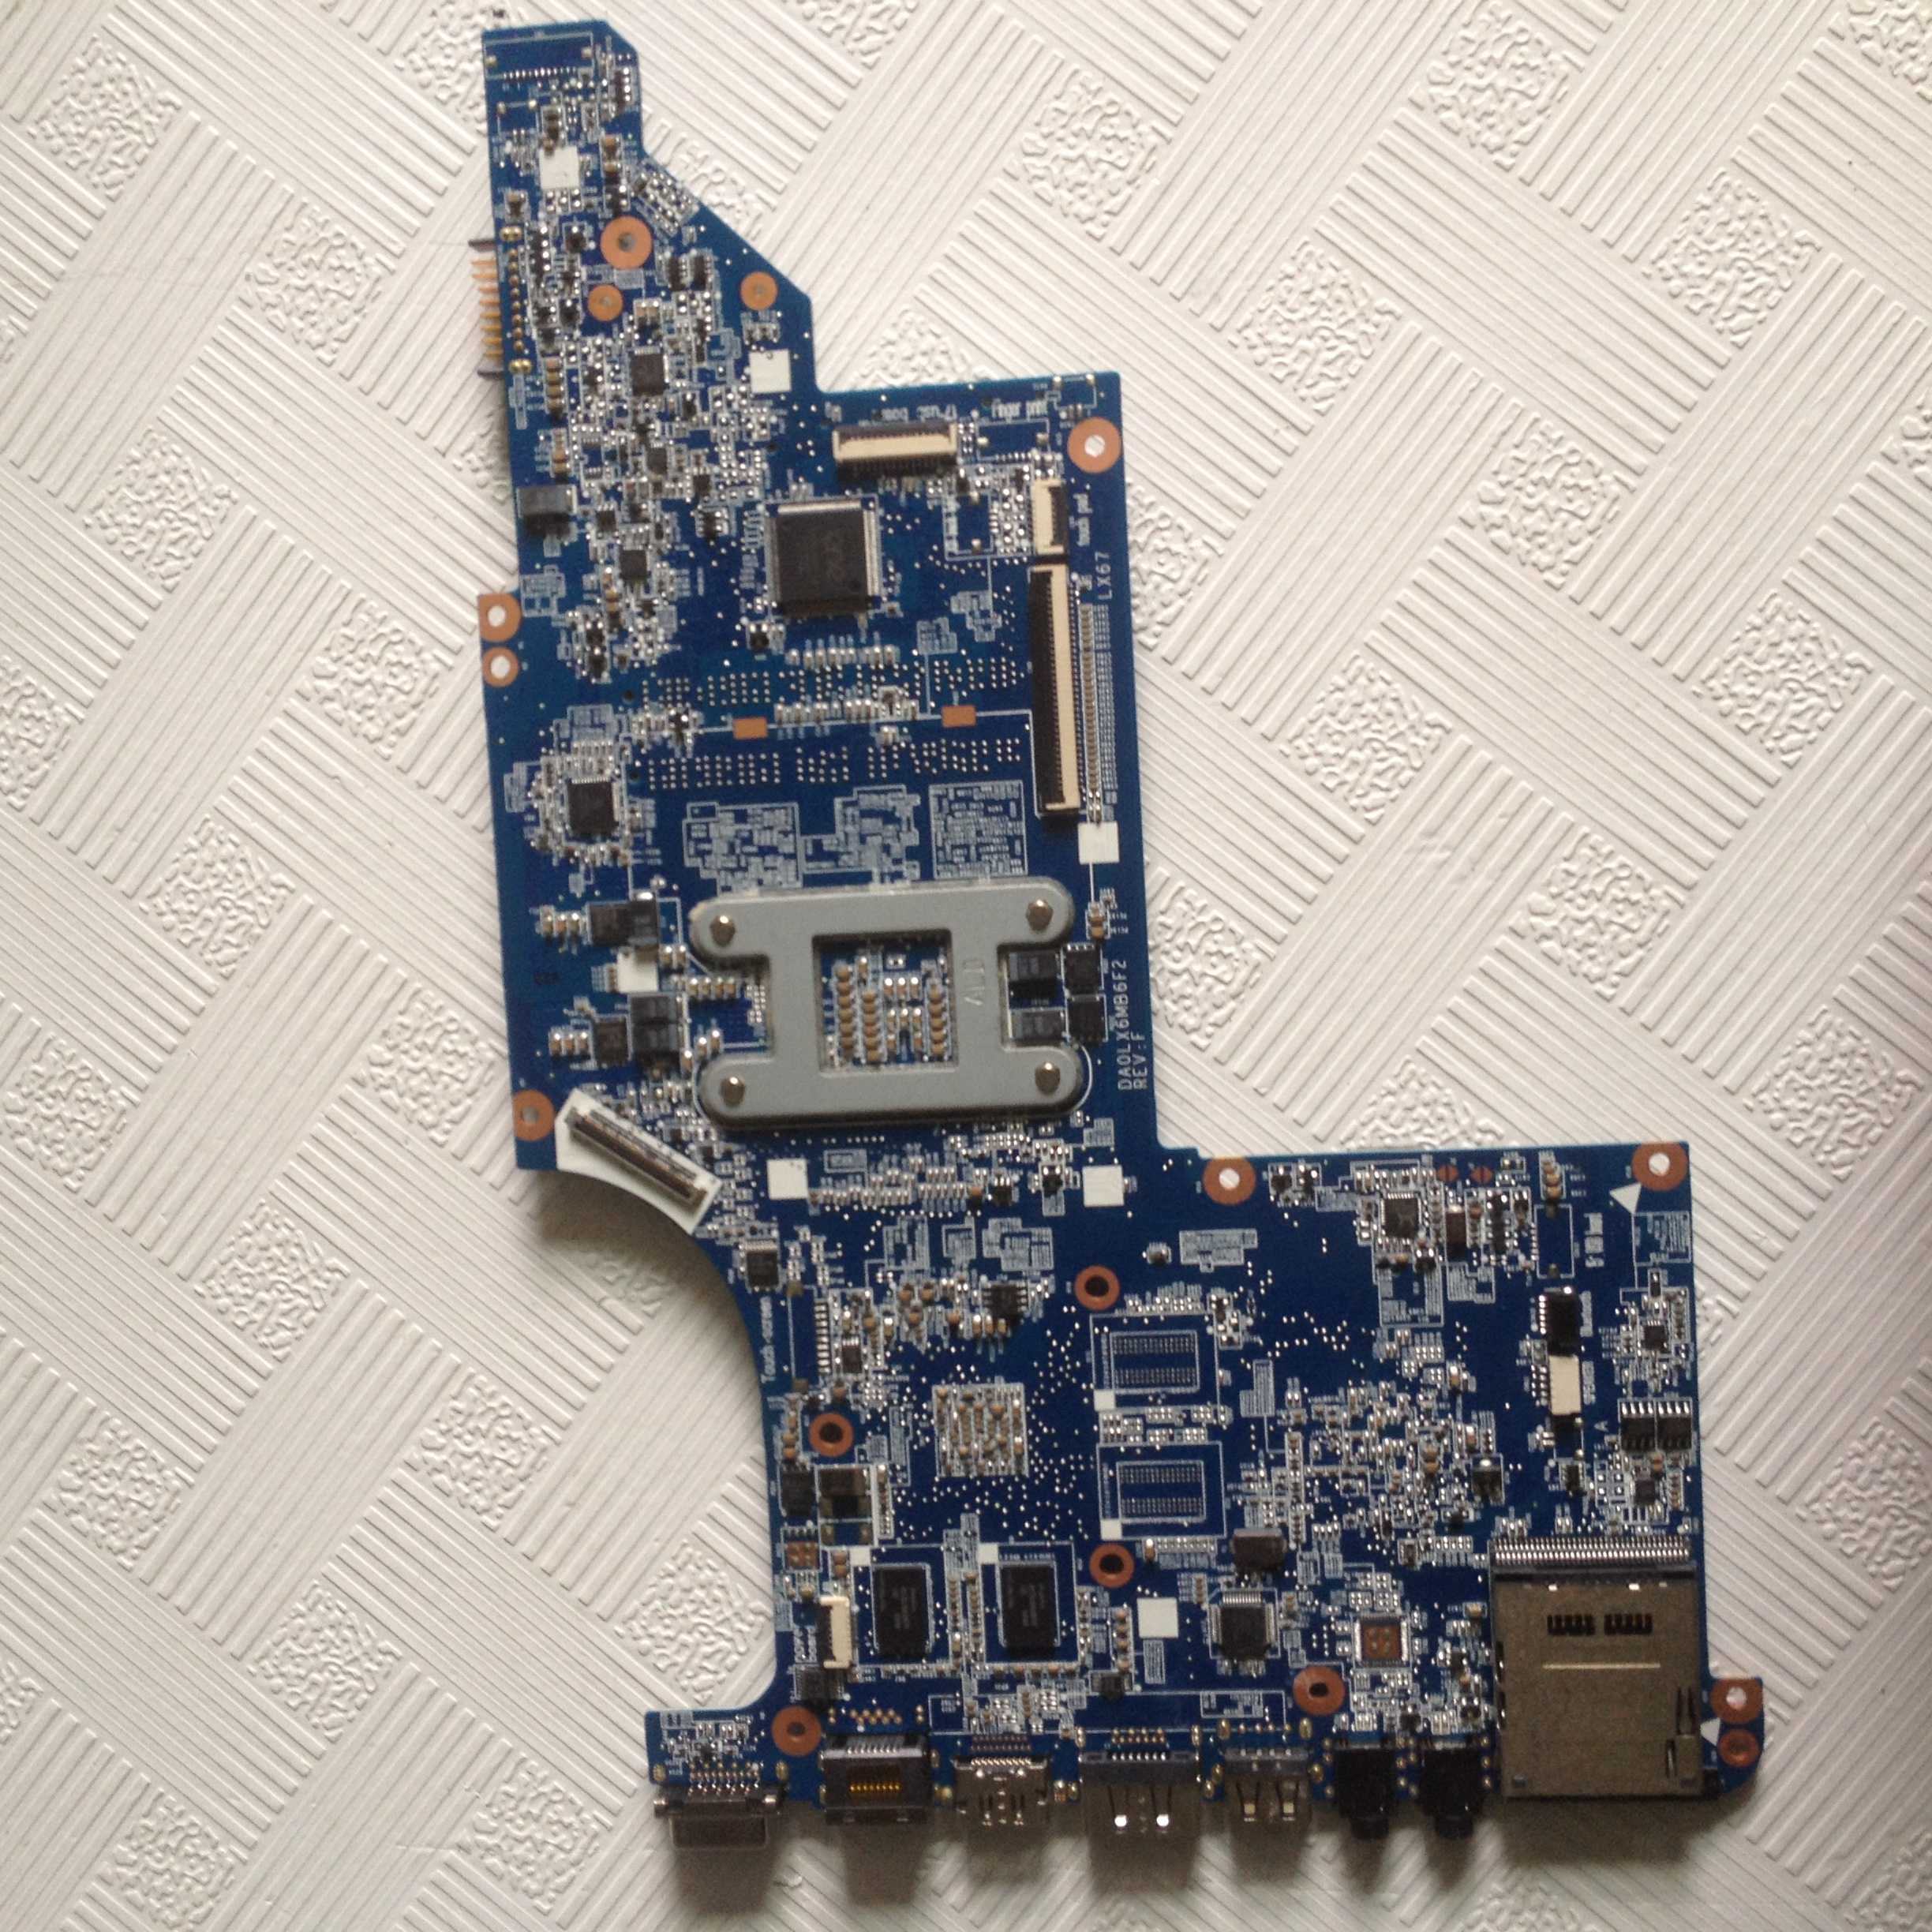 605321-001 motherboard for HP Pavilion DV7 DV7-4000 ATI 5650 1GB